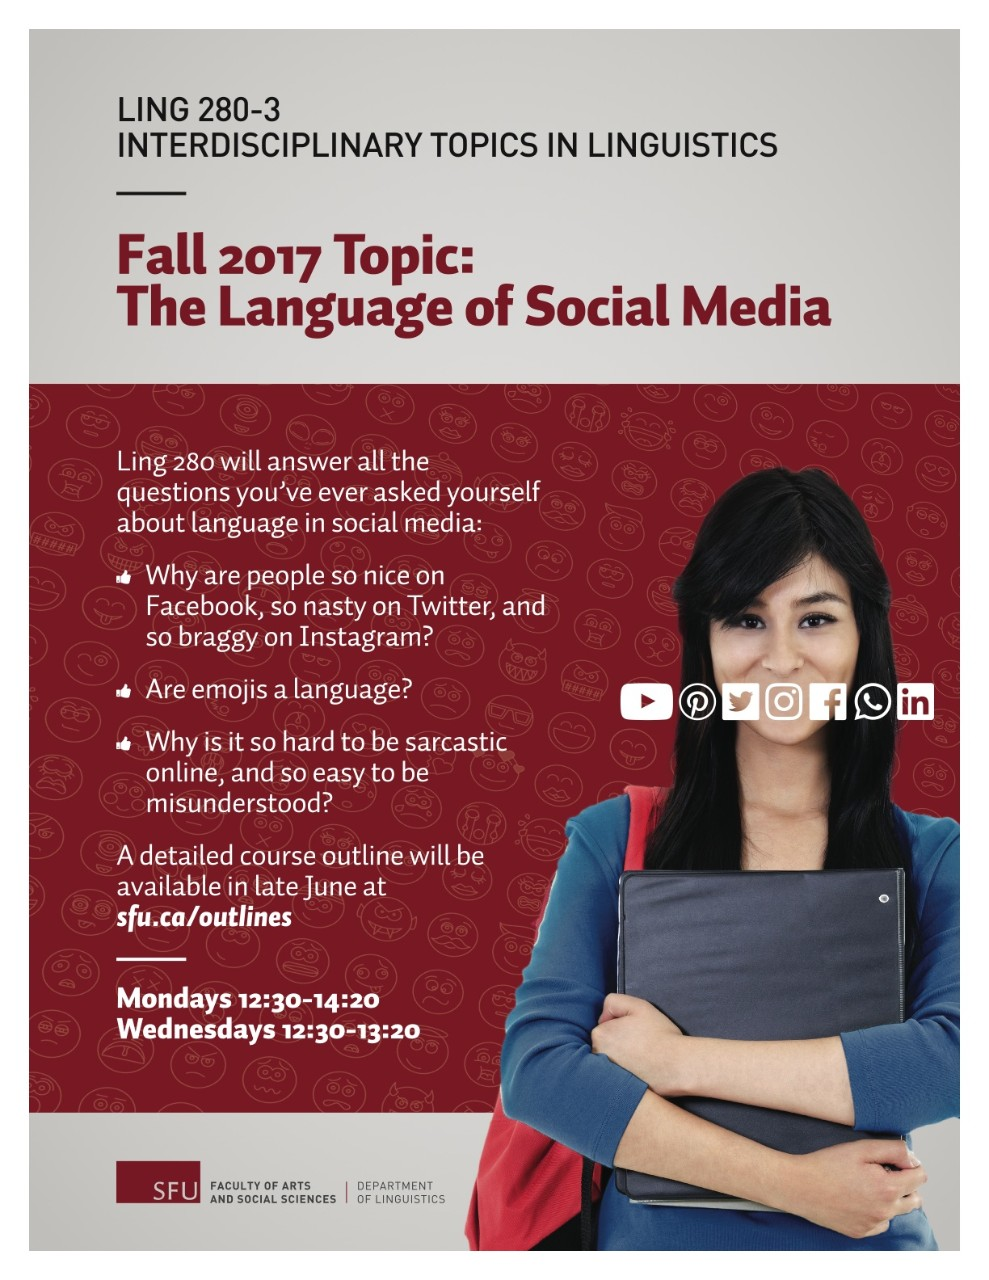 LING 280-3 Interdisciplinary Topics in Linguistics Fall 2017 Topic: The Language of Social Media with Dr. Maite Taboada